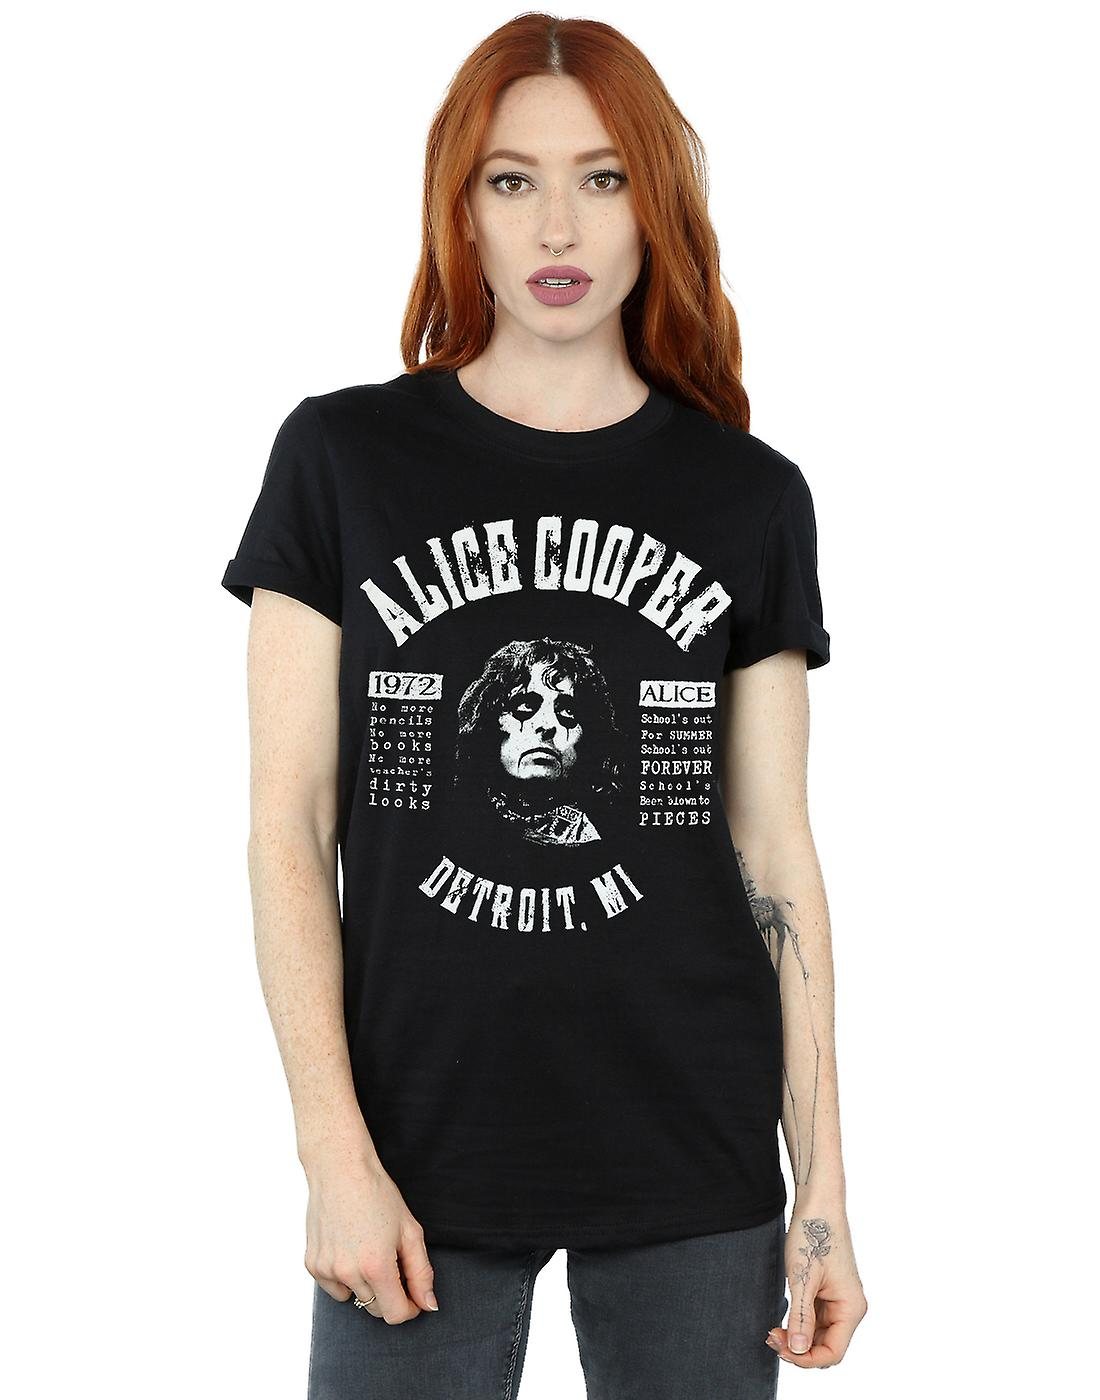 Official Alice Cooper Schools Out Band T-Shirt